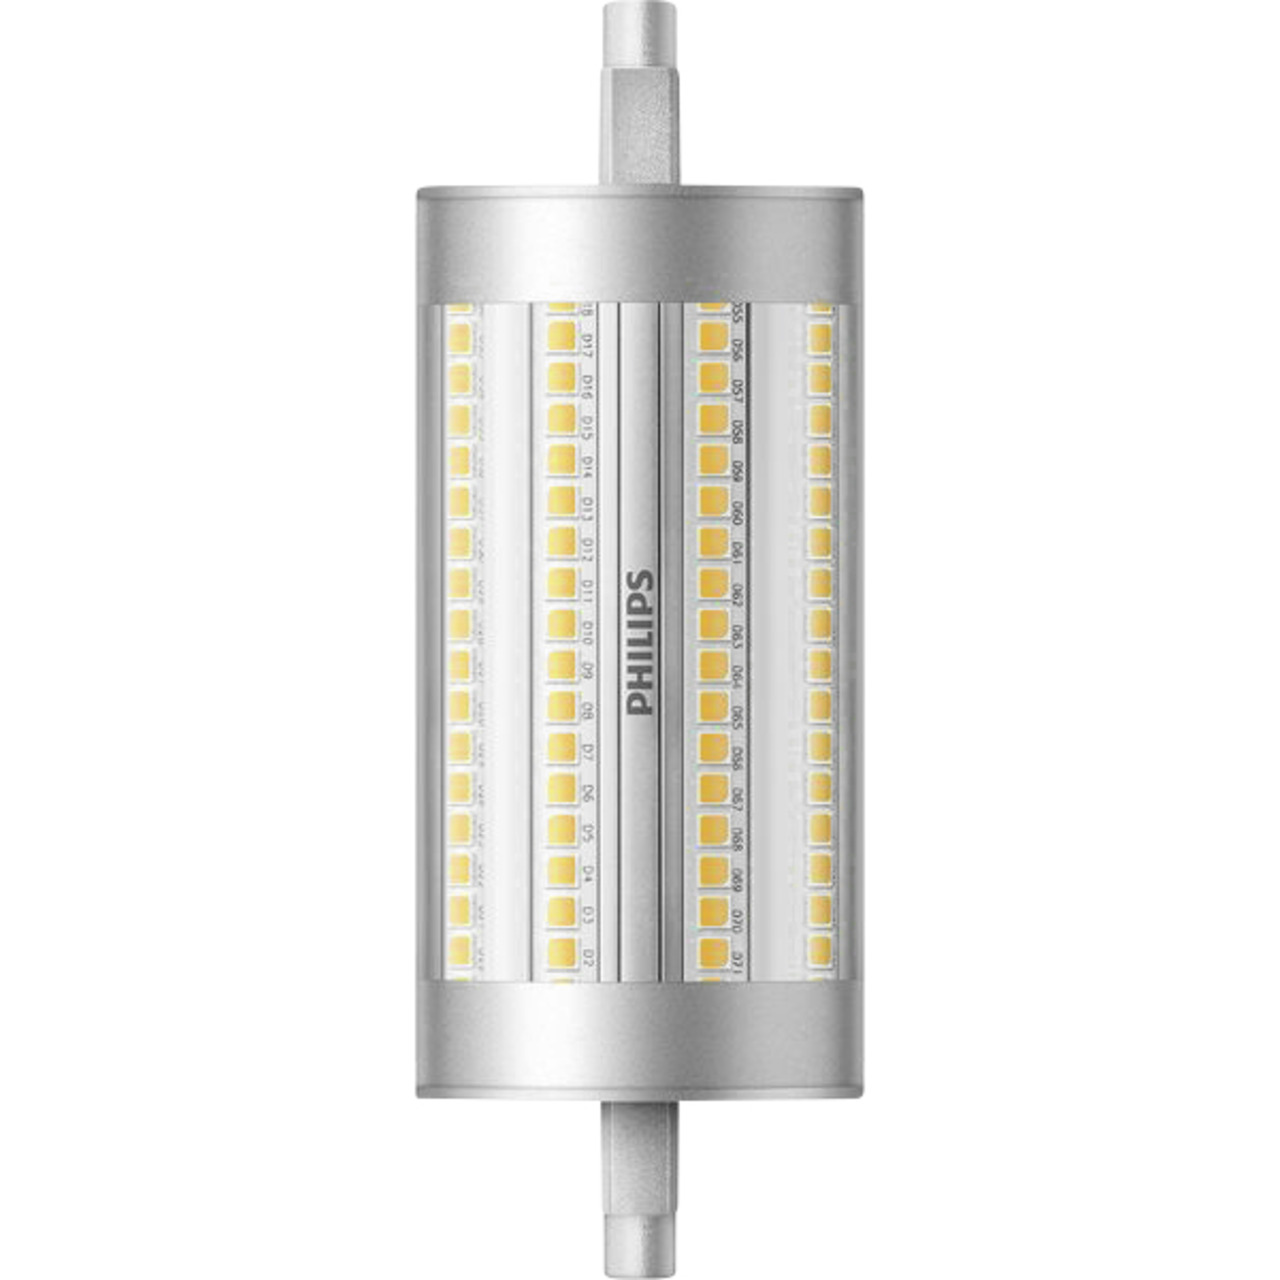 Philips CorePro LED 17-5-W-R7s-LED-Lampe- 118 mm- warmweiss- dimmbar